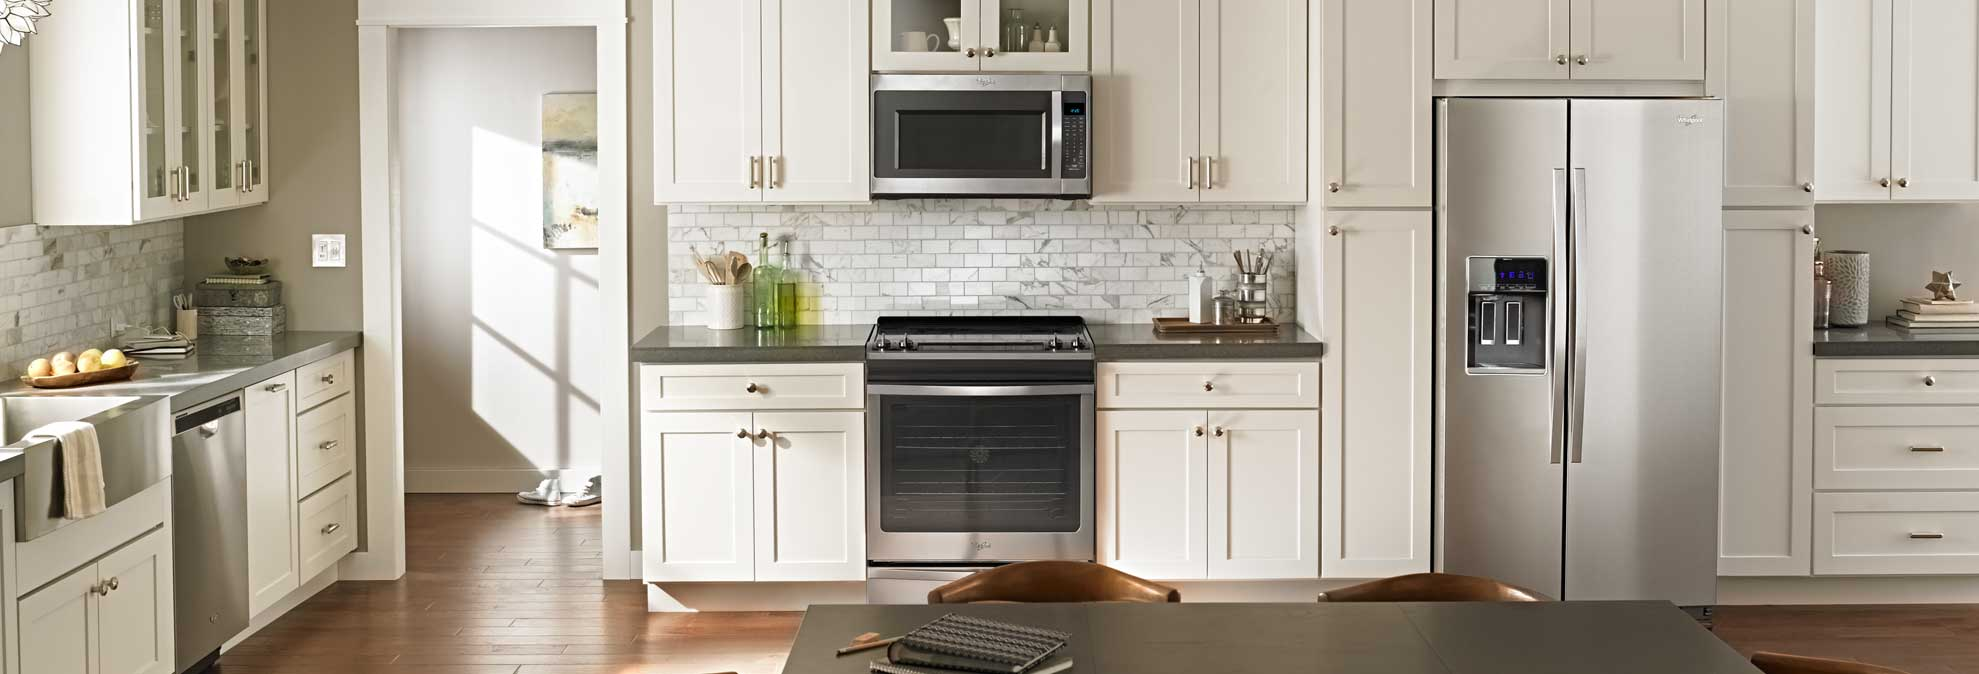 Consumer Reports Kitchen Planning and Buying Guide December 2015 185 Top Products